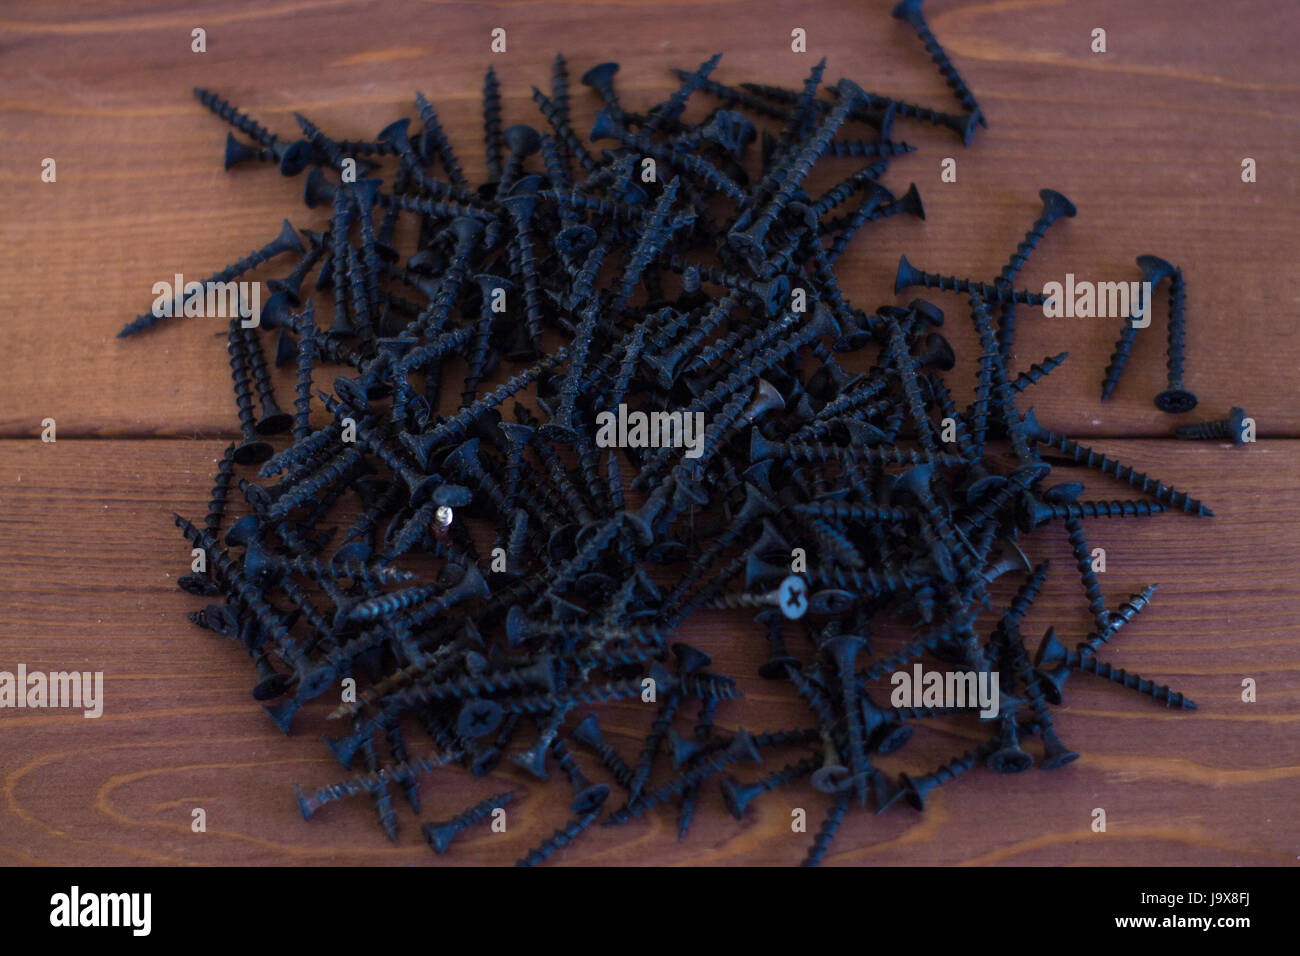 Black self-tapping screws on a wooden background. - Stock Image